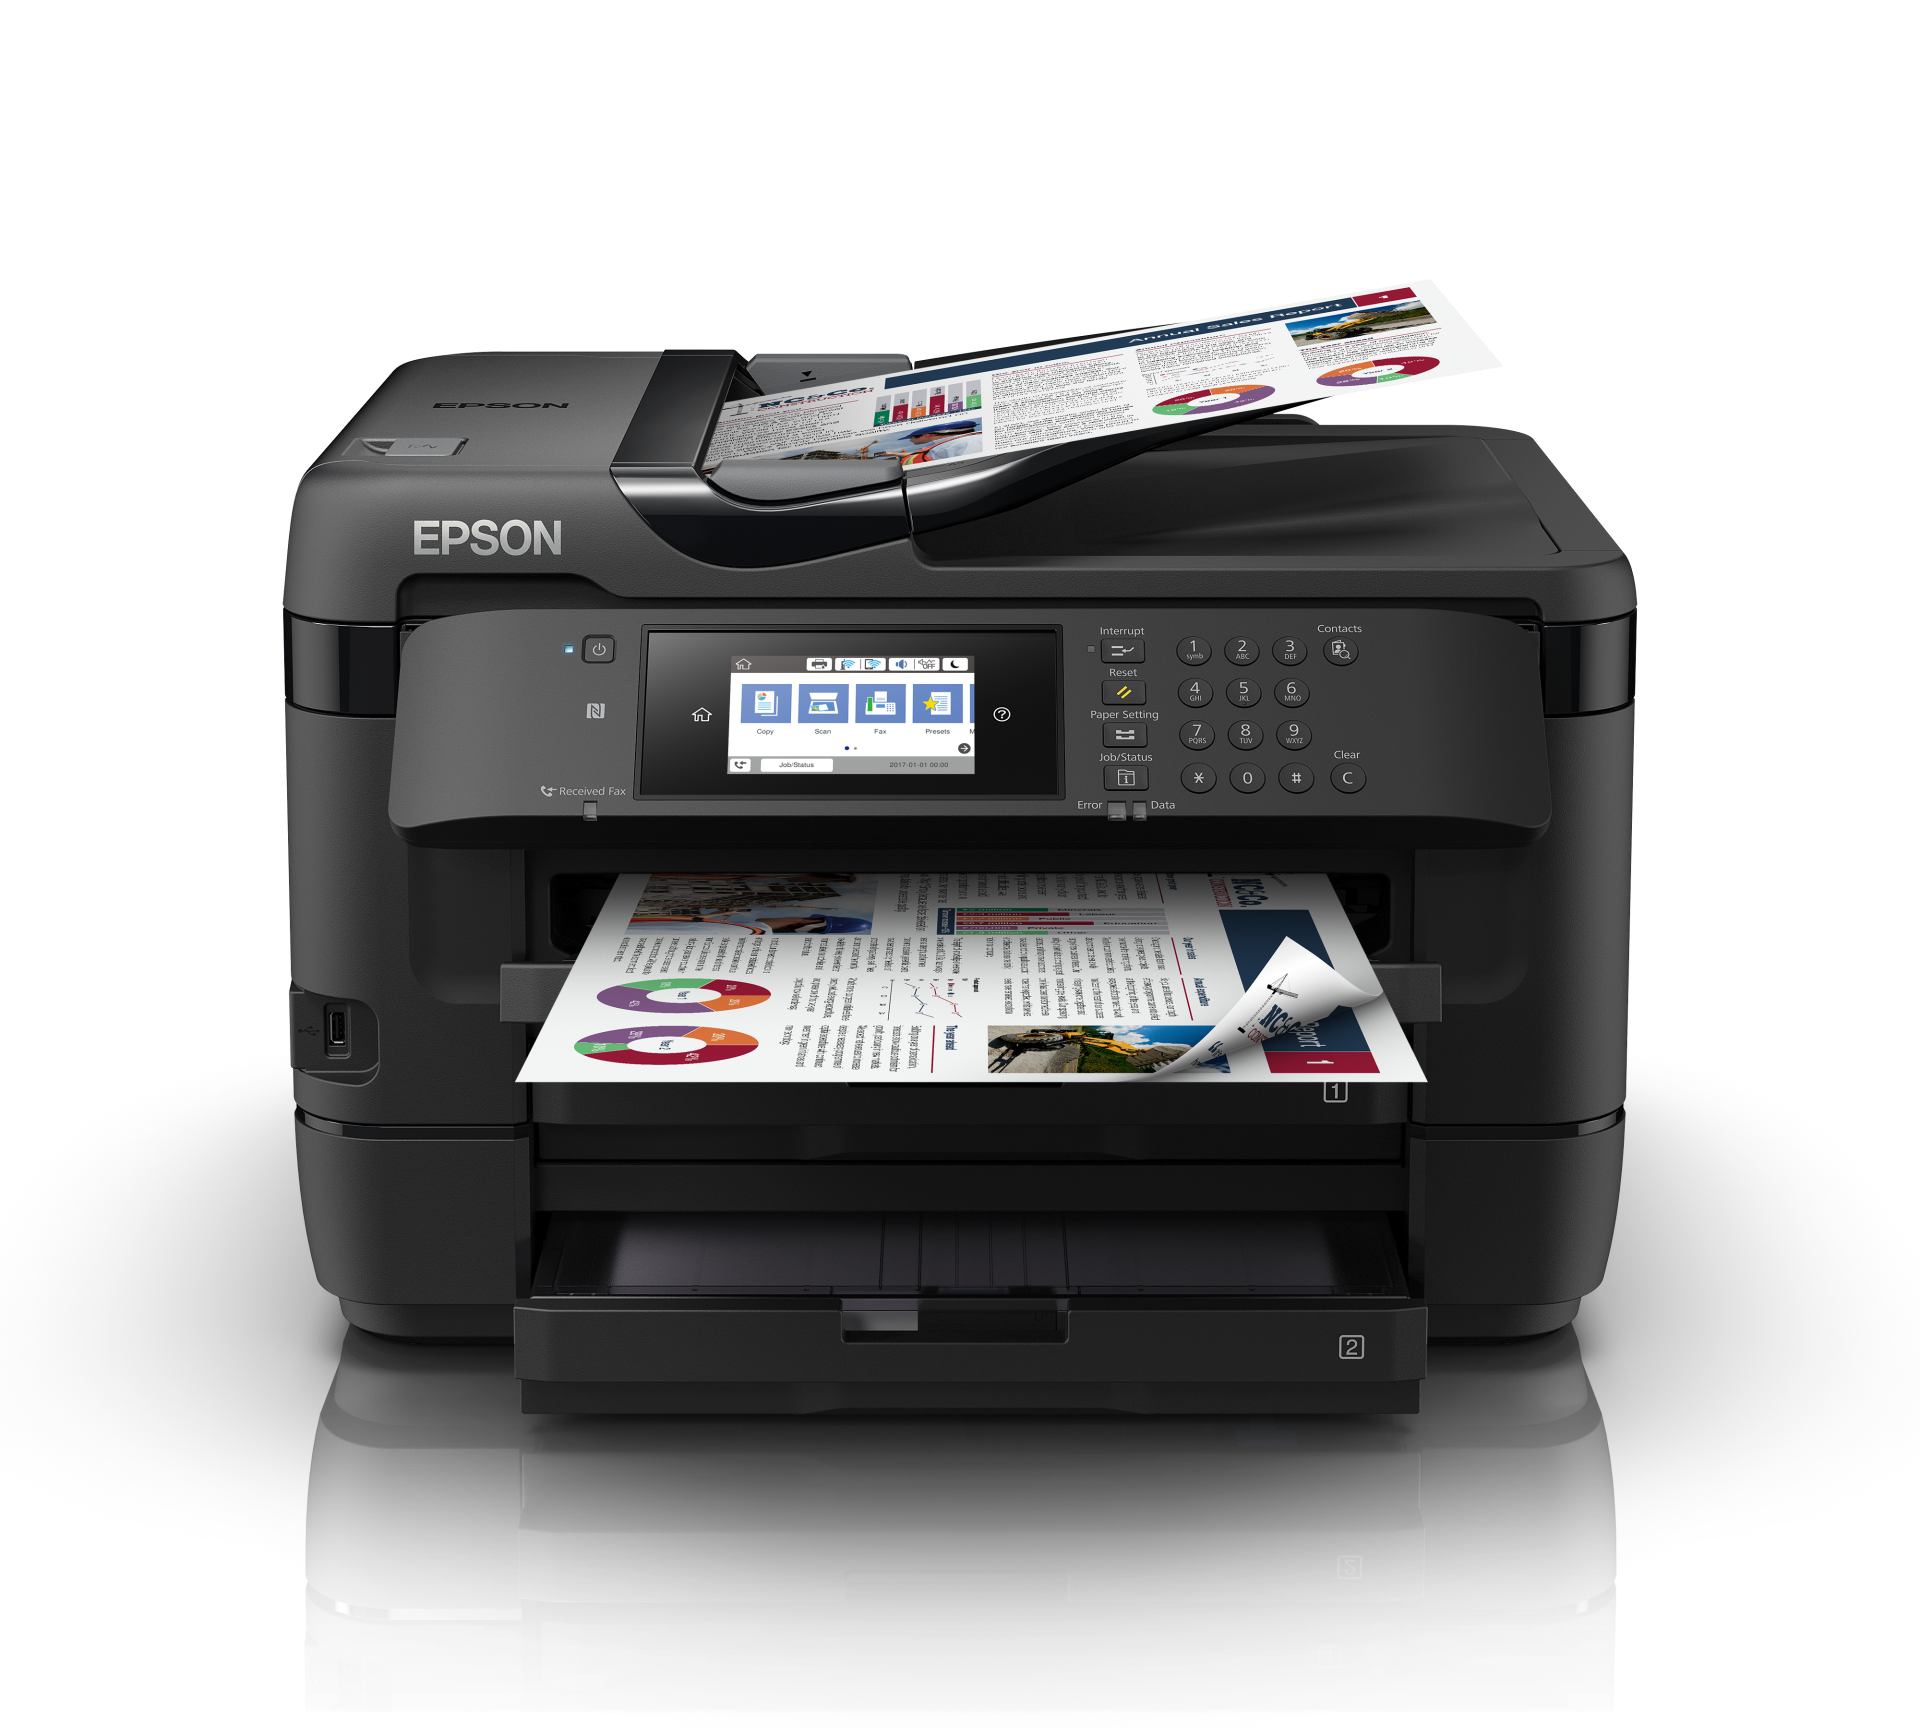 Epson WorkForce WF-7720DTWF printeris